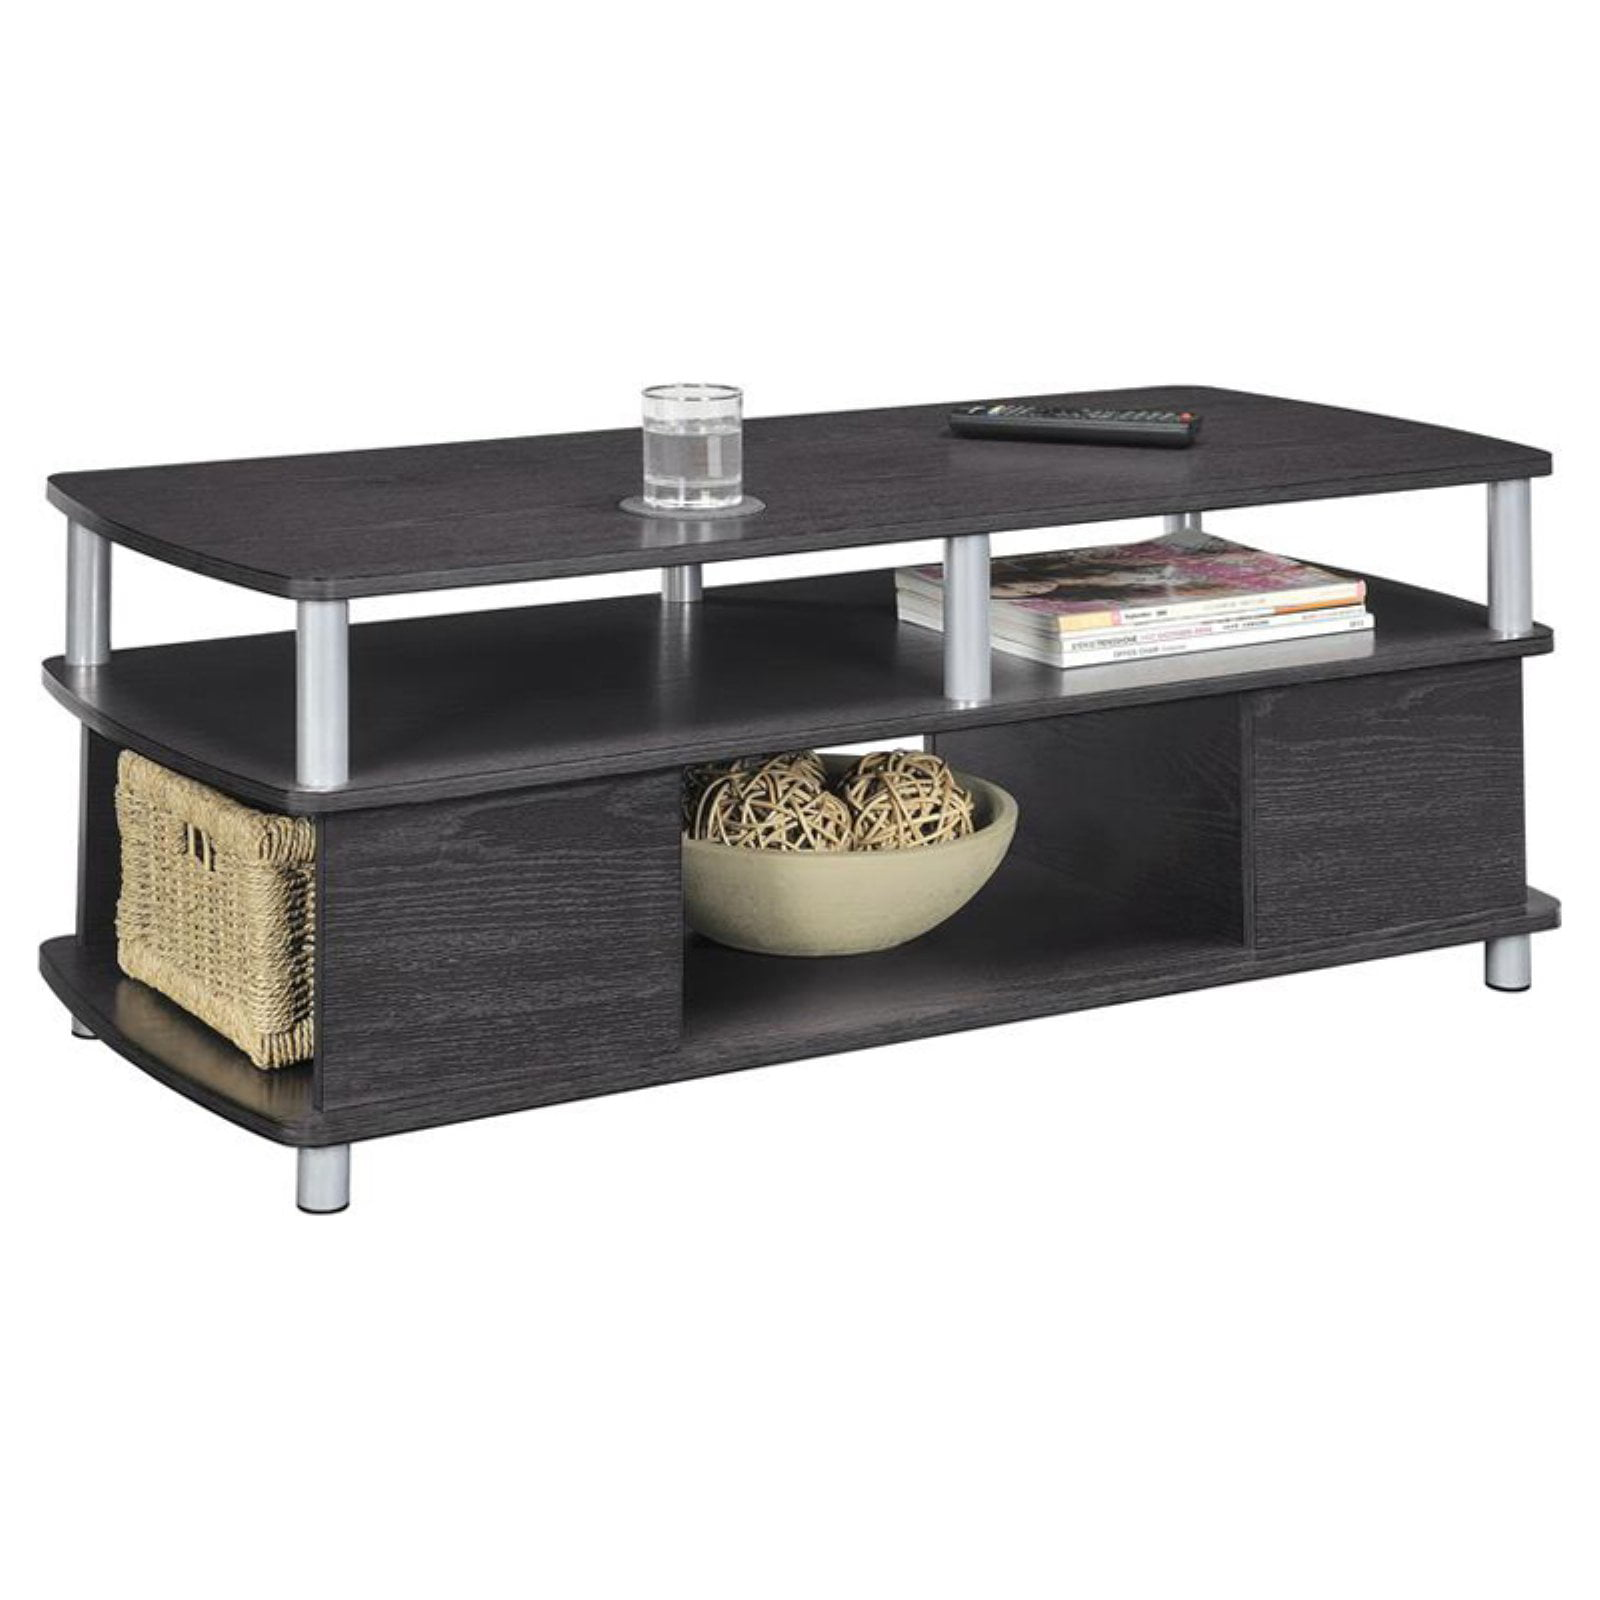 Ameriwood Home Carson Coffee Table, Espresso Silver by Ameriwood Industries